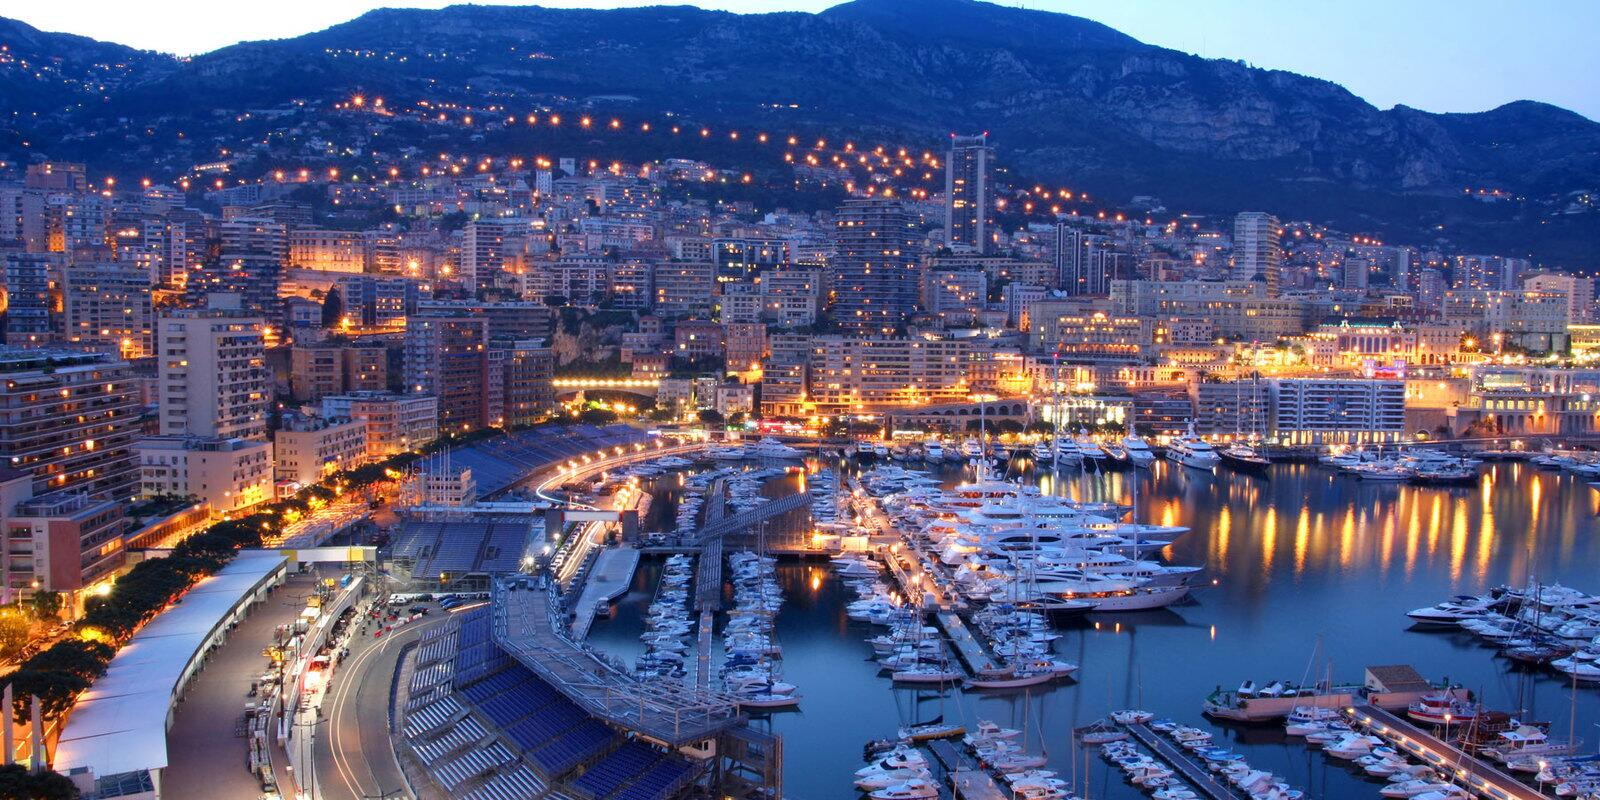 Easter 2021 in the wonderful Monte Carlo